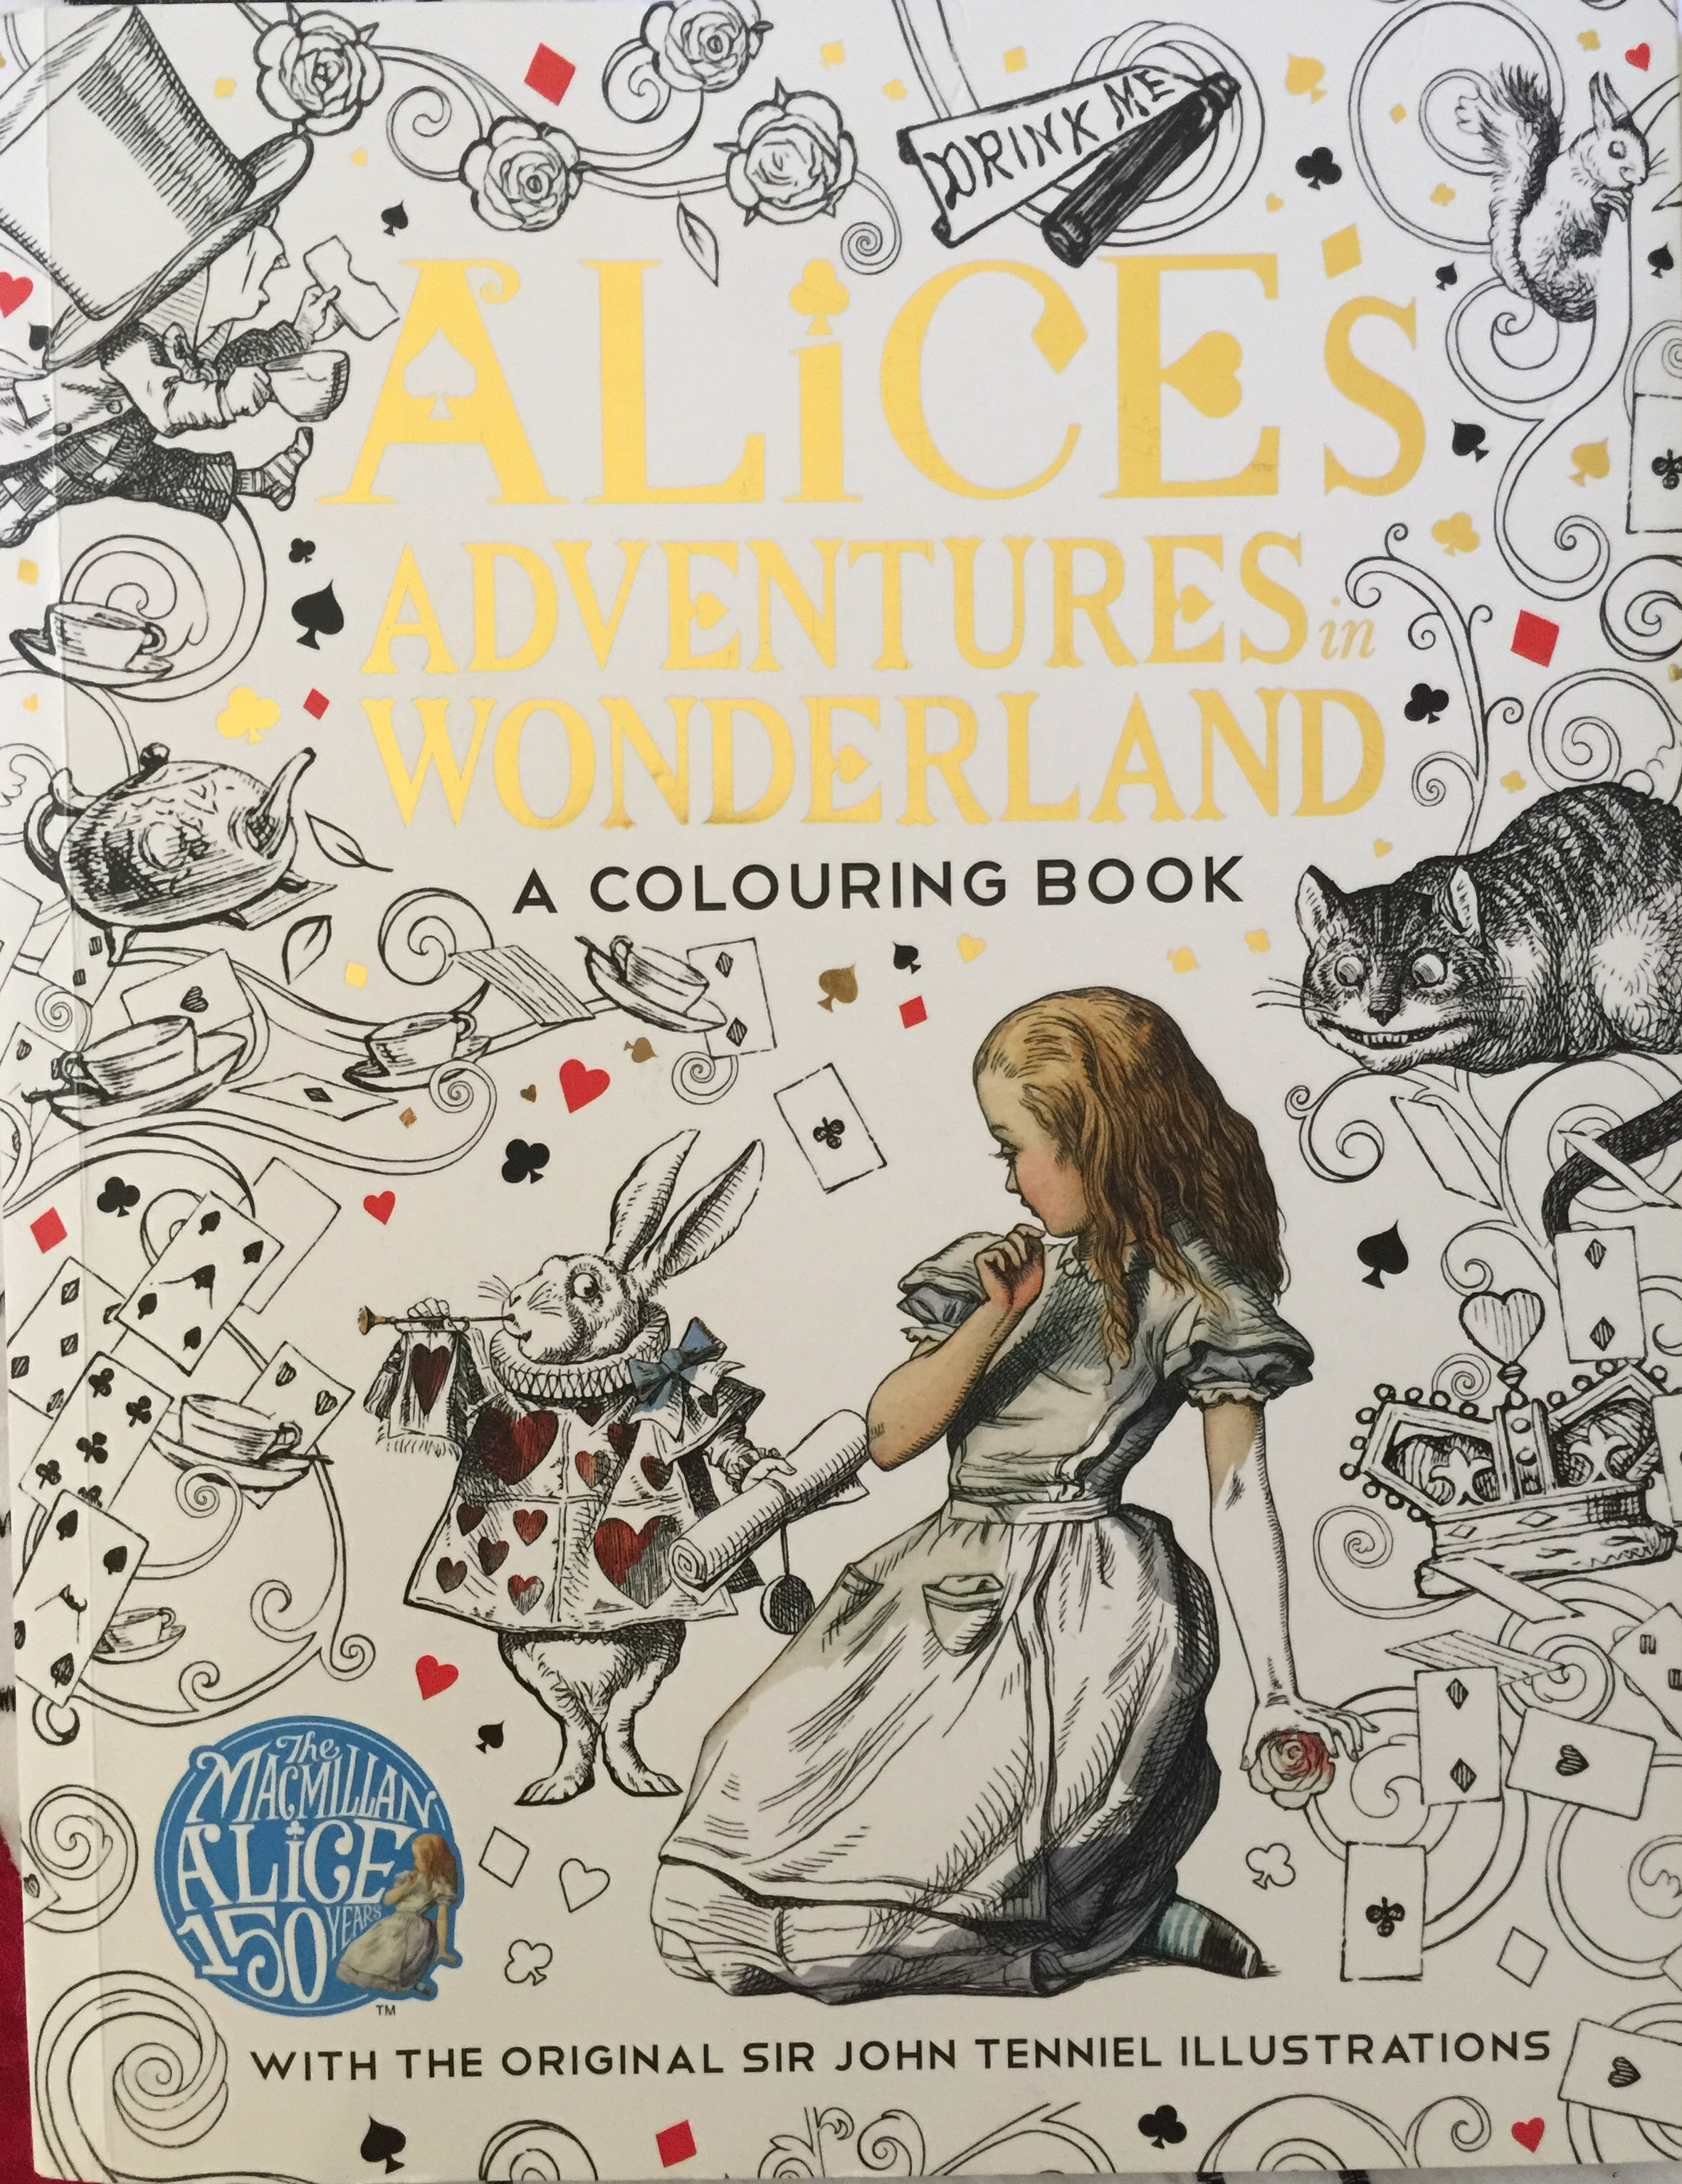 coloring colouring alice in wonderland macmillan stress relief art therapy mindfulness depression adult pens pencils fineliners marker